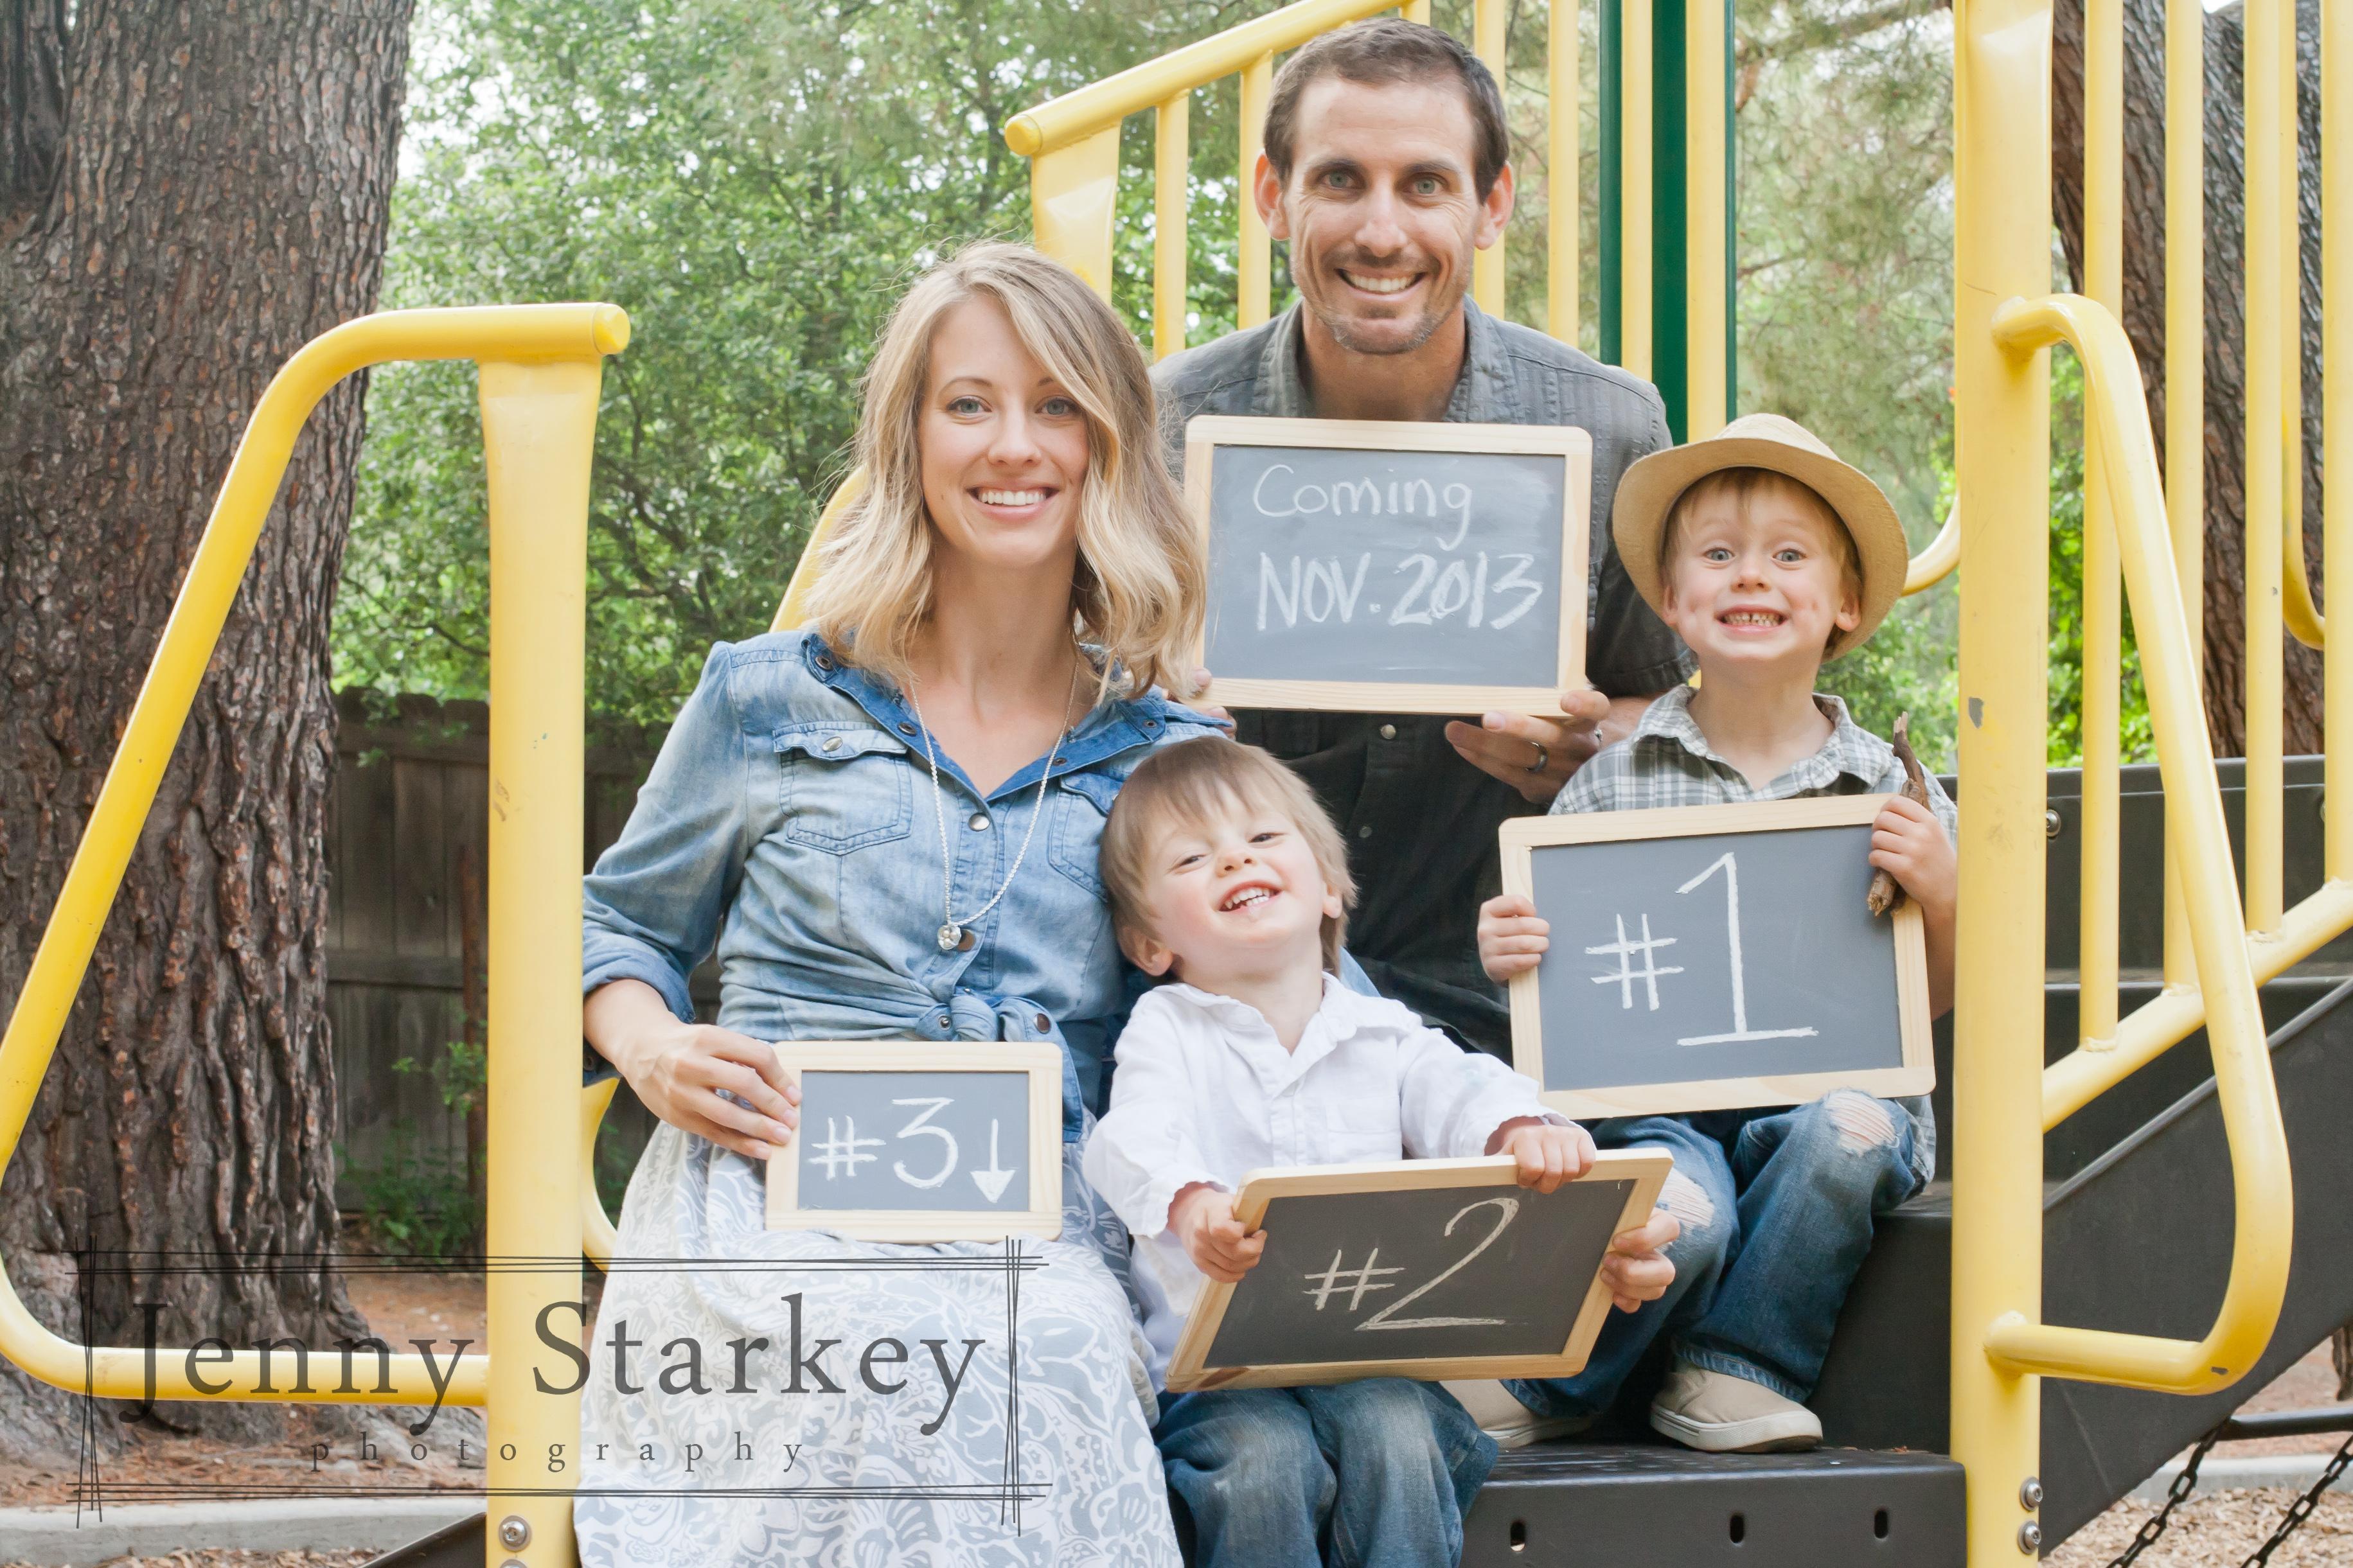 Announcing Baby Number Three part 2 Jenny Starkey Photography – Announcing Baby